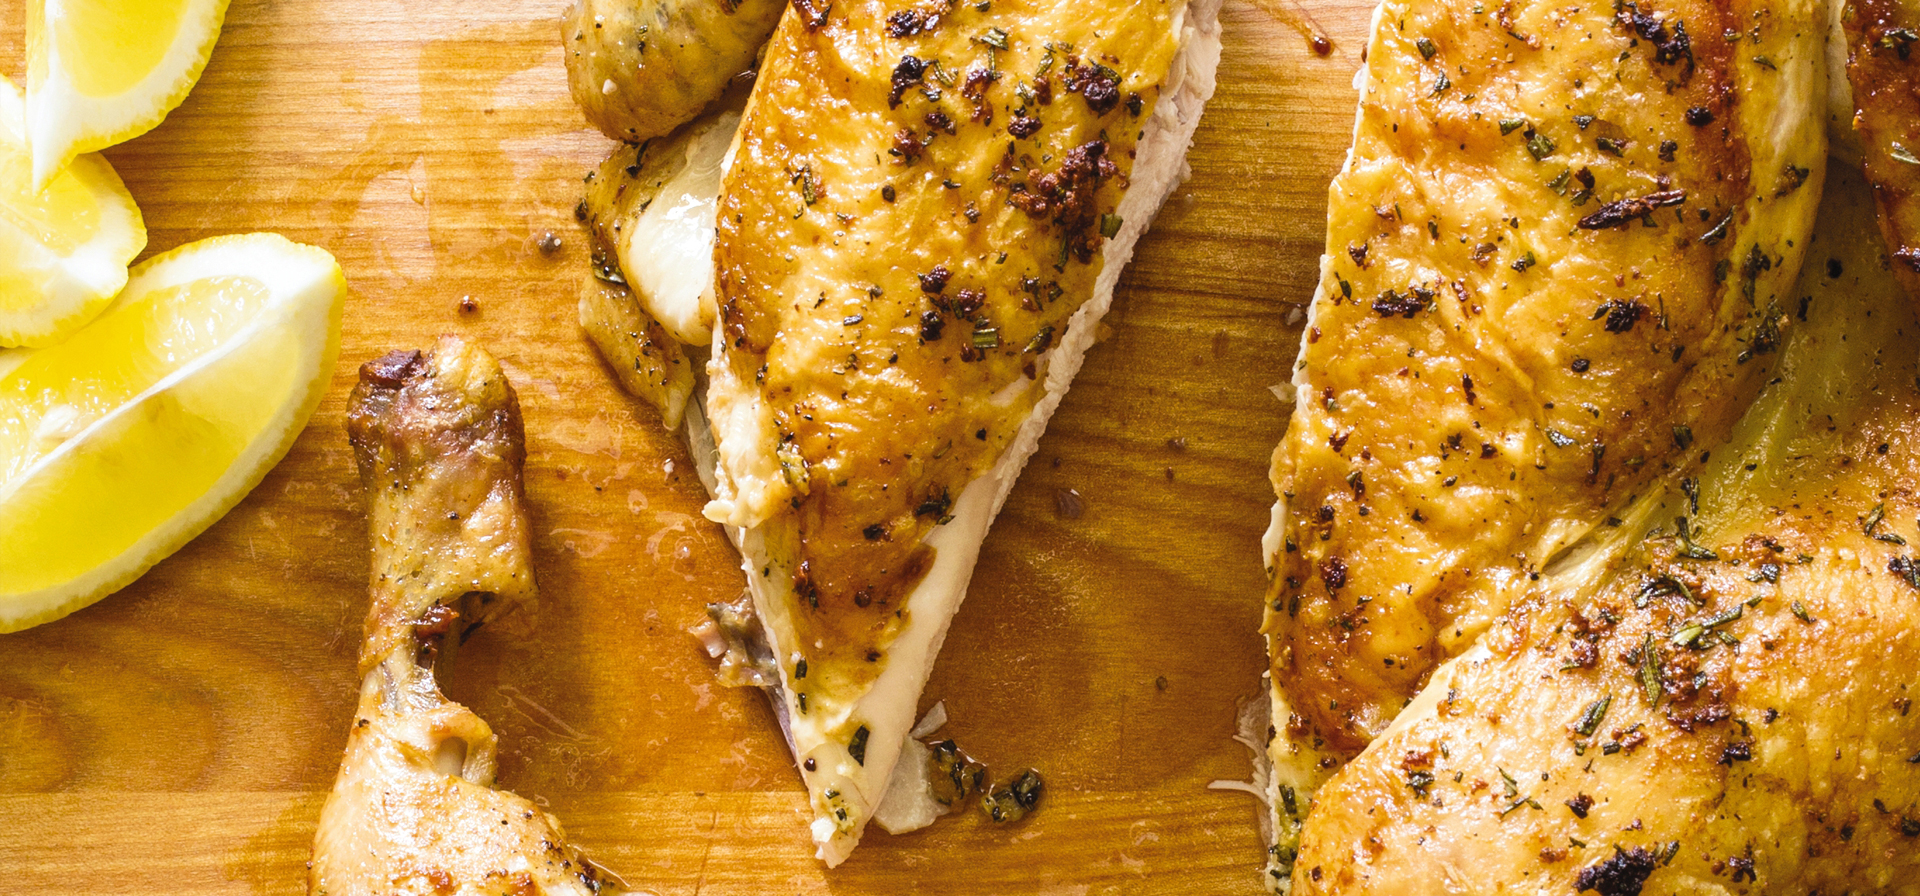 Cast Iron Crisp Roast Butterflied Chicken with Rosemary and Garlic